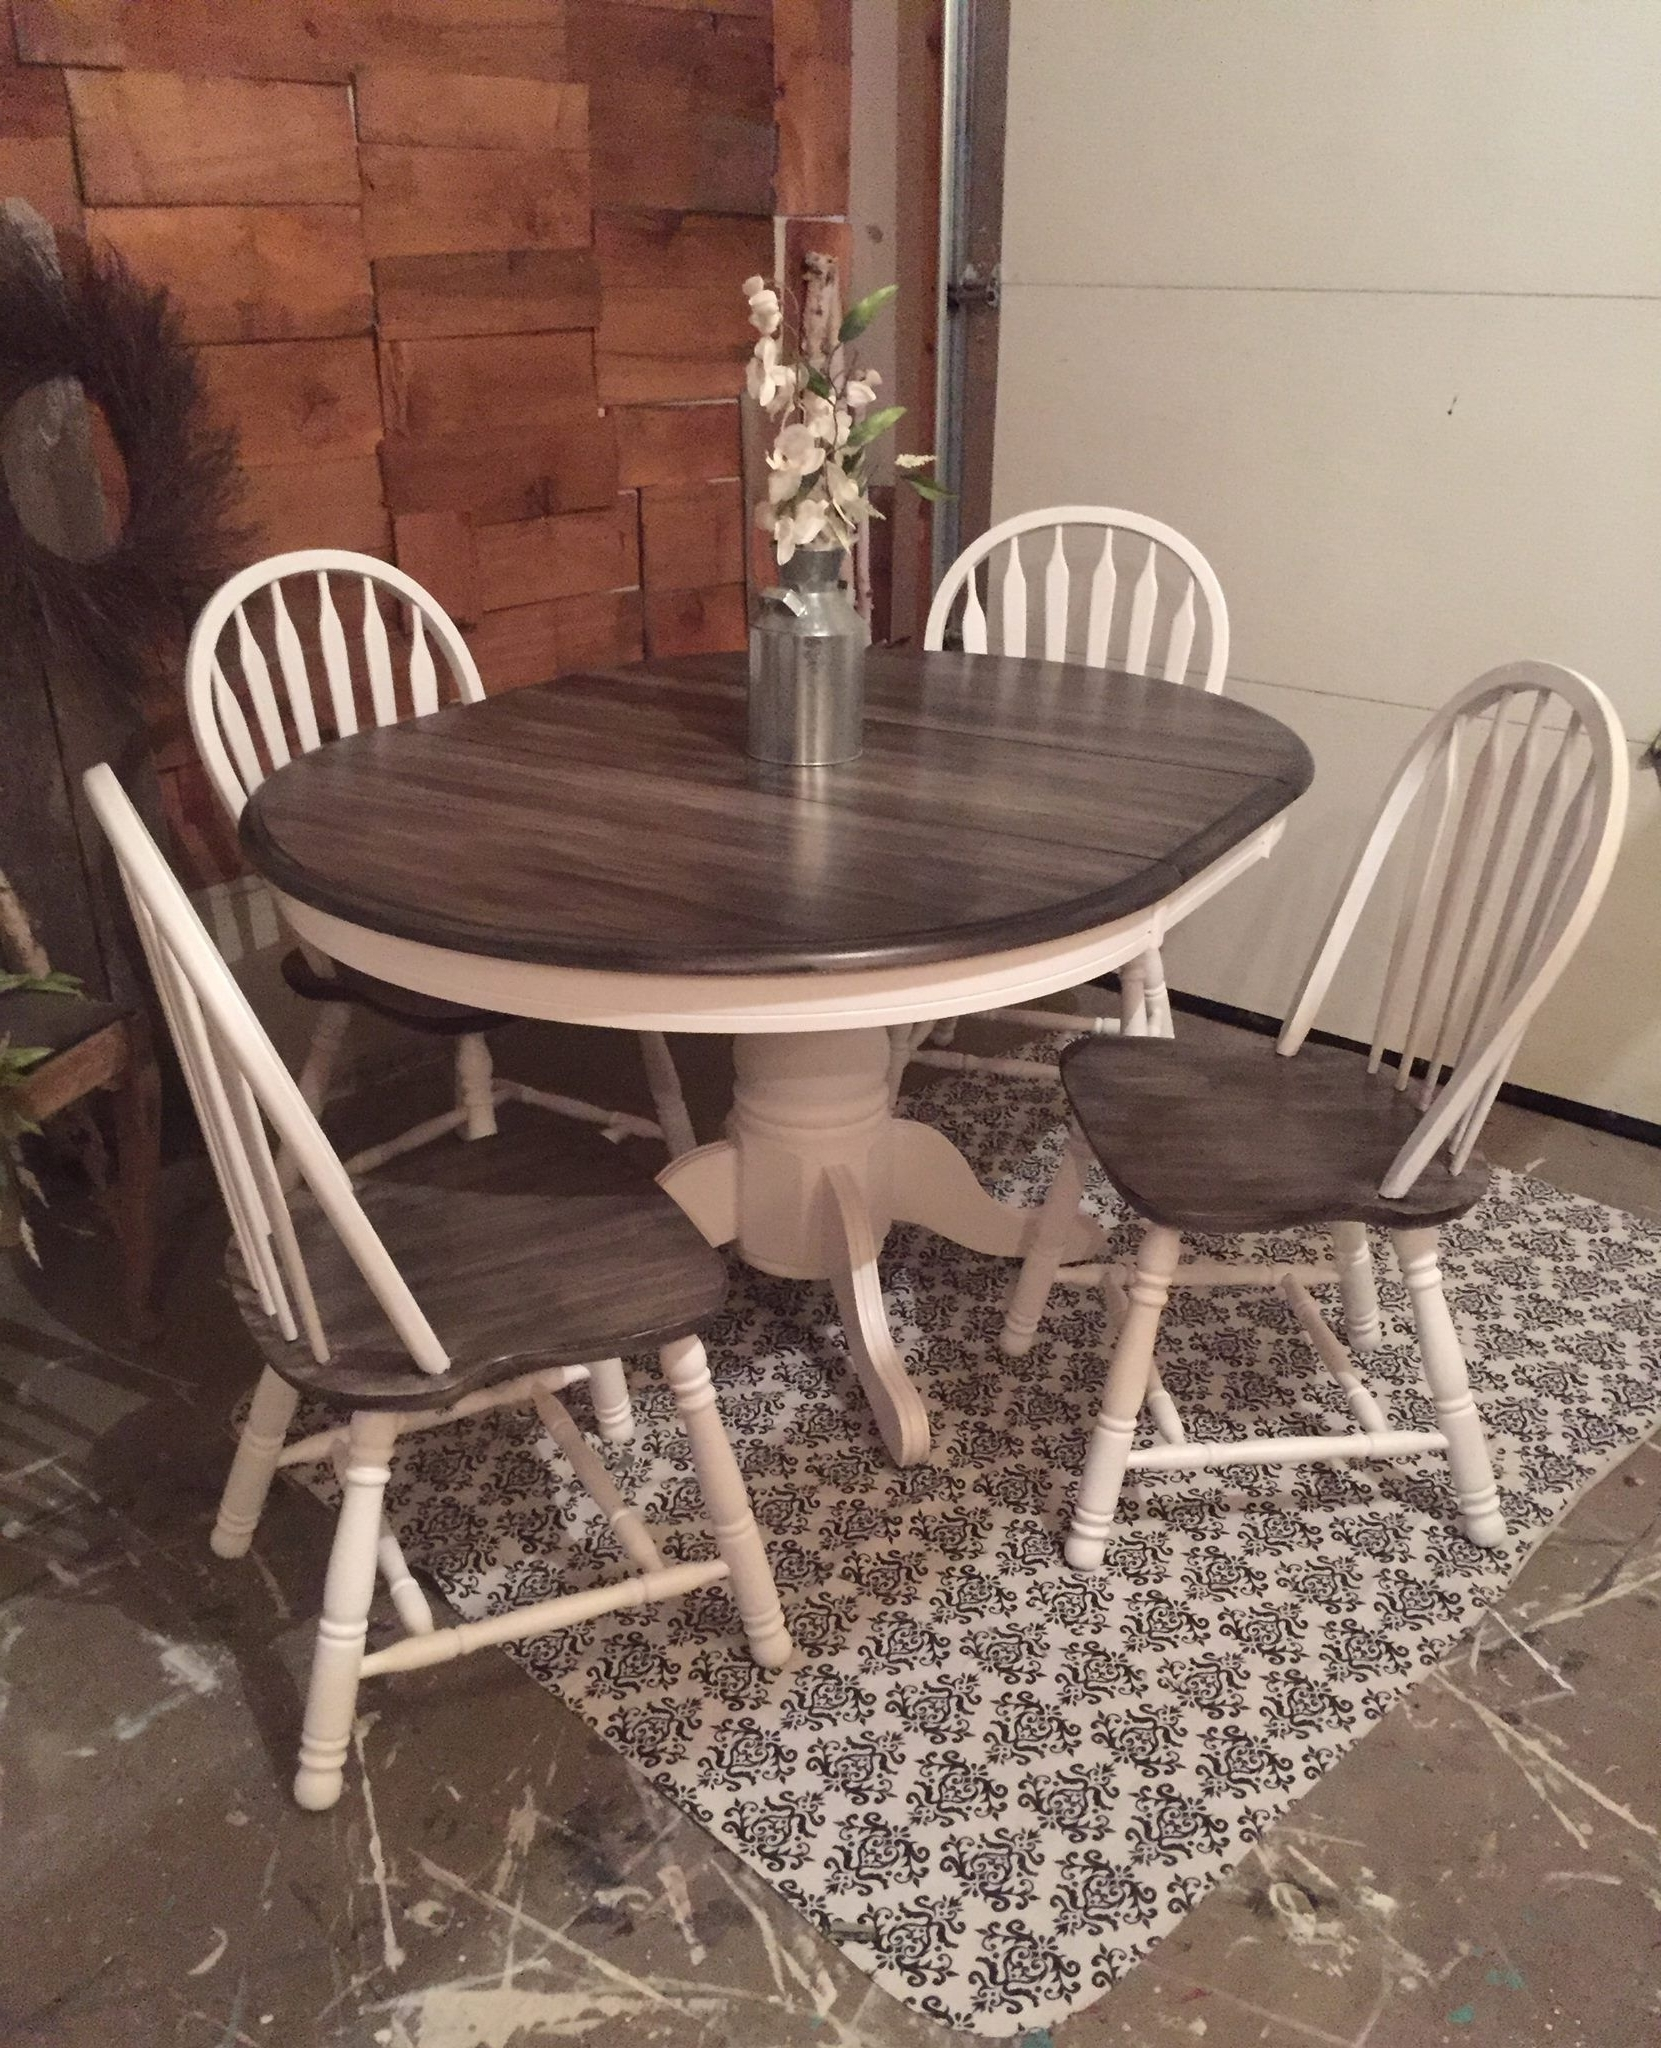 Washed Old Oak & Waxed Black Legs Bar Tables With Newest From Simple Oak Table And Chairs To A Decorative Rustic Dining Set (View 22 of 25)